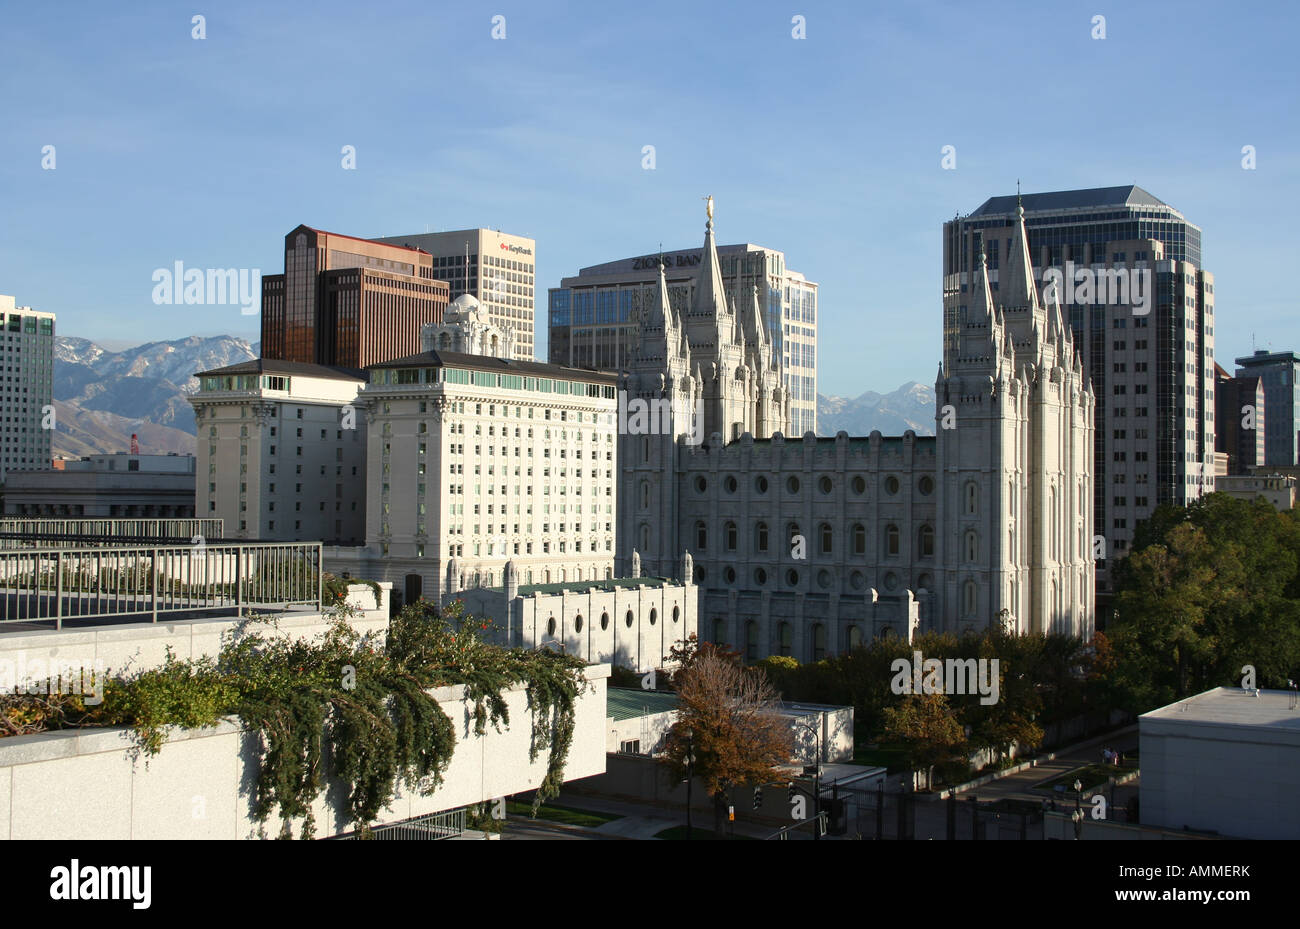 Elevated View Of Temple Square From Roof Of Lds Conference